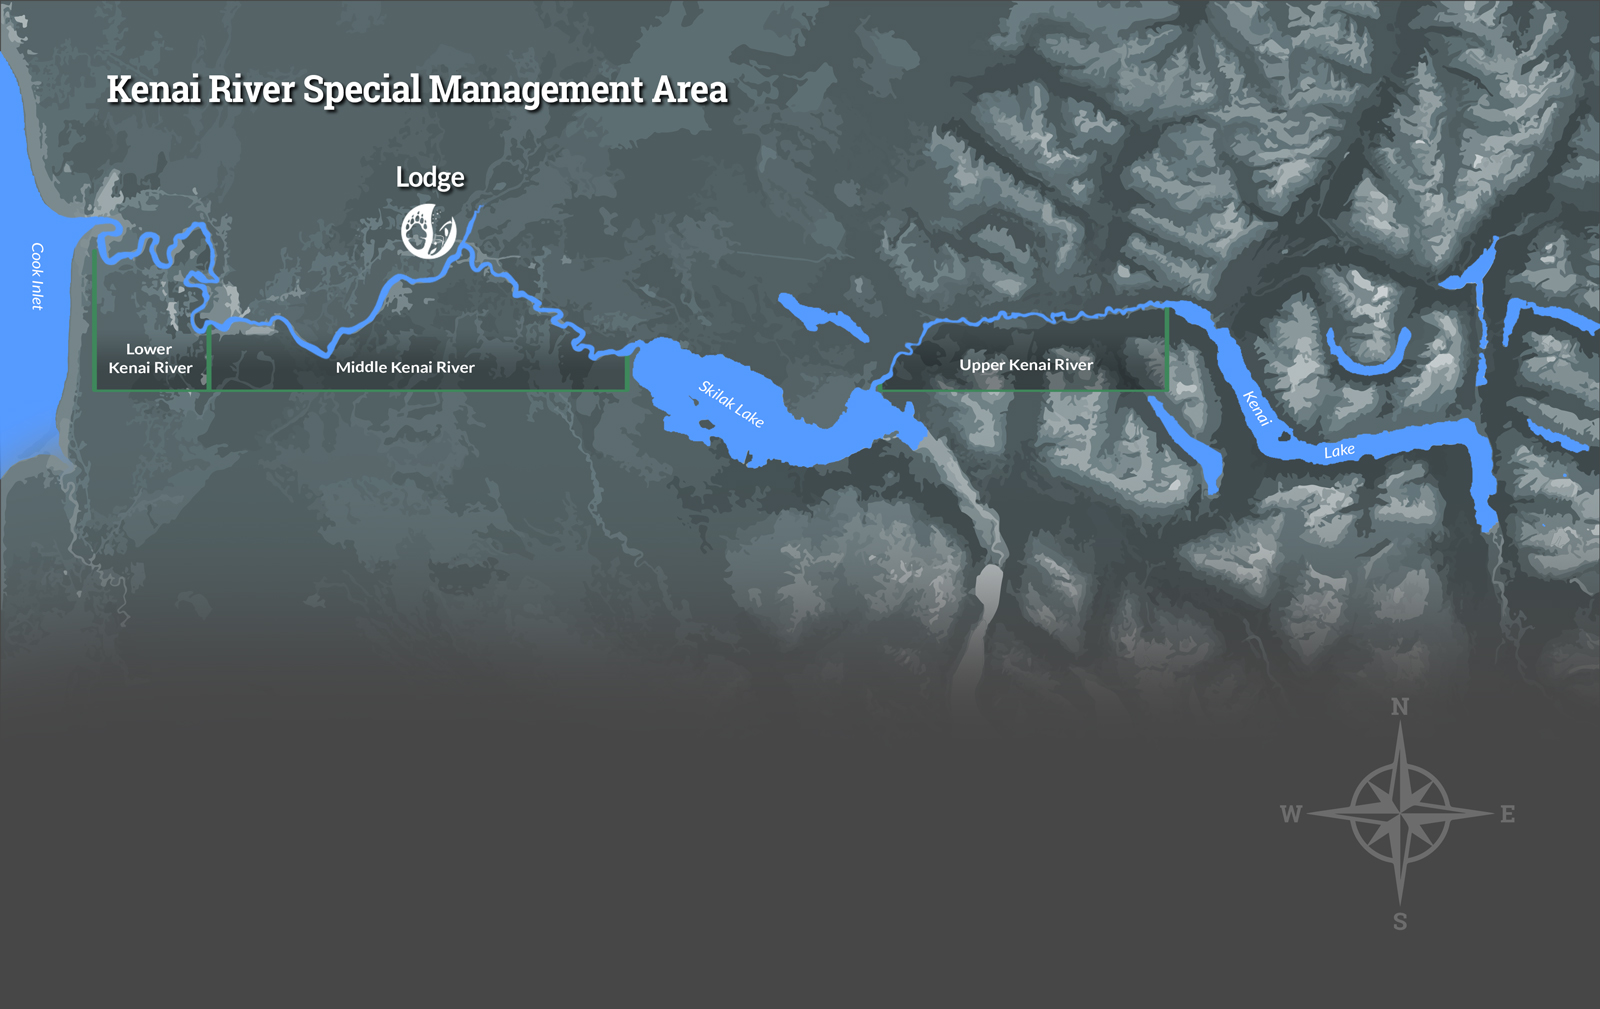 Kenai River Special Management Area